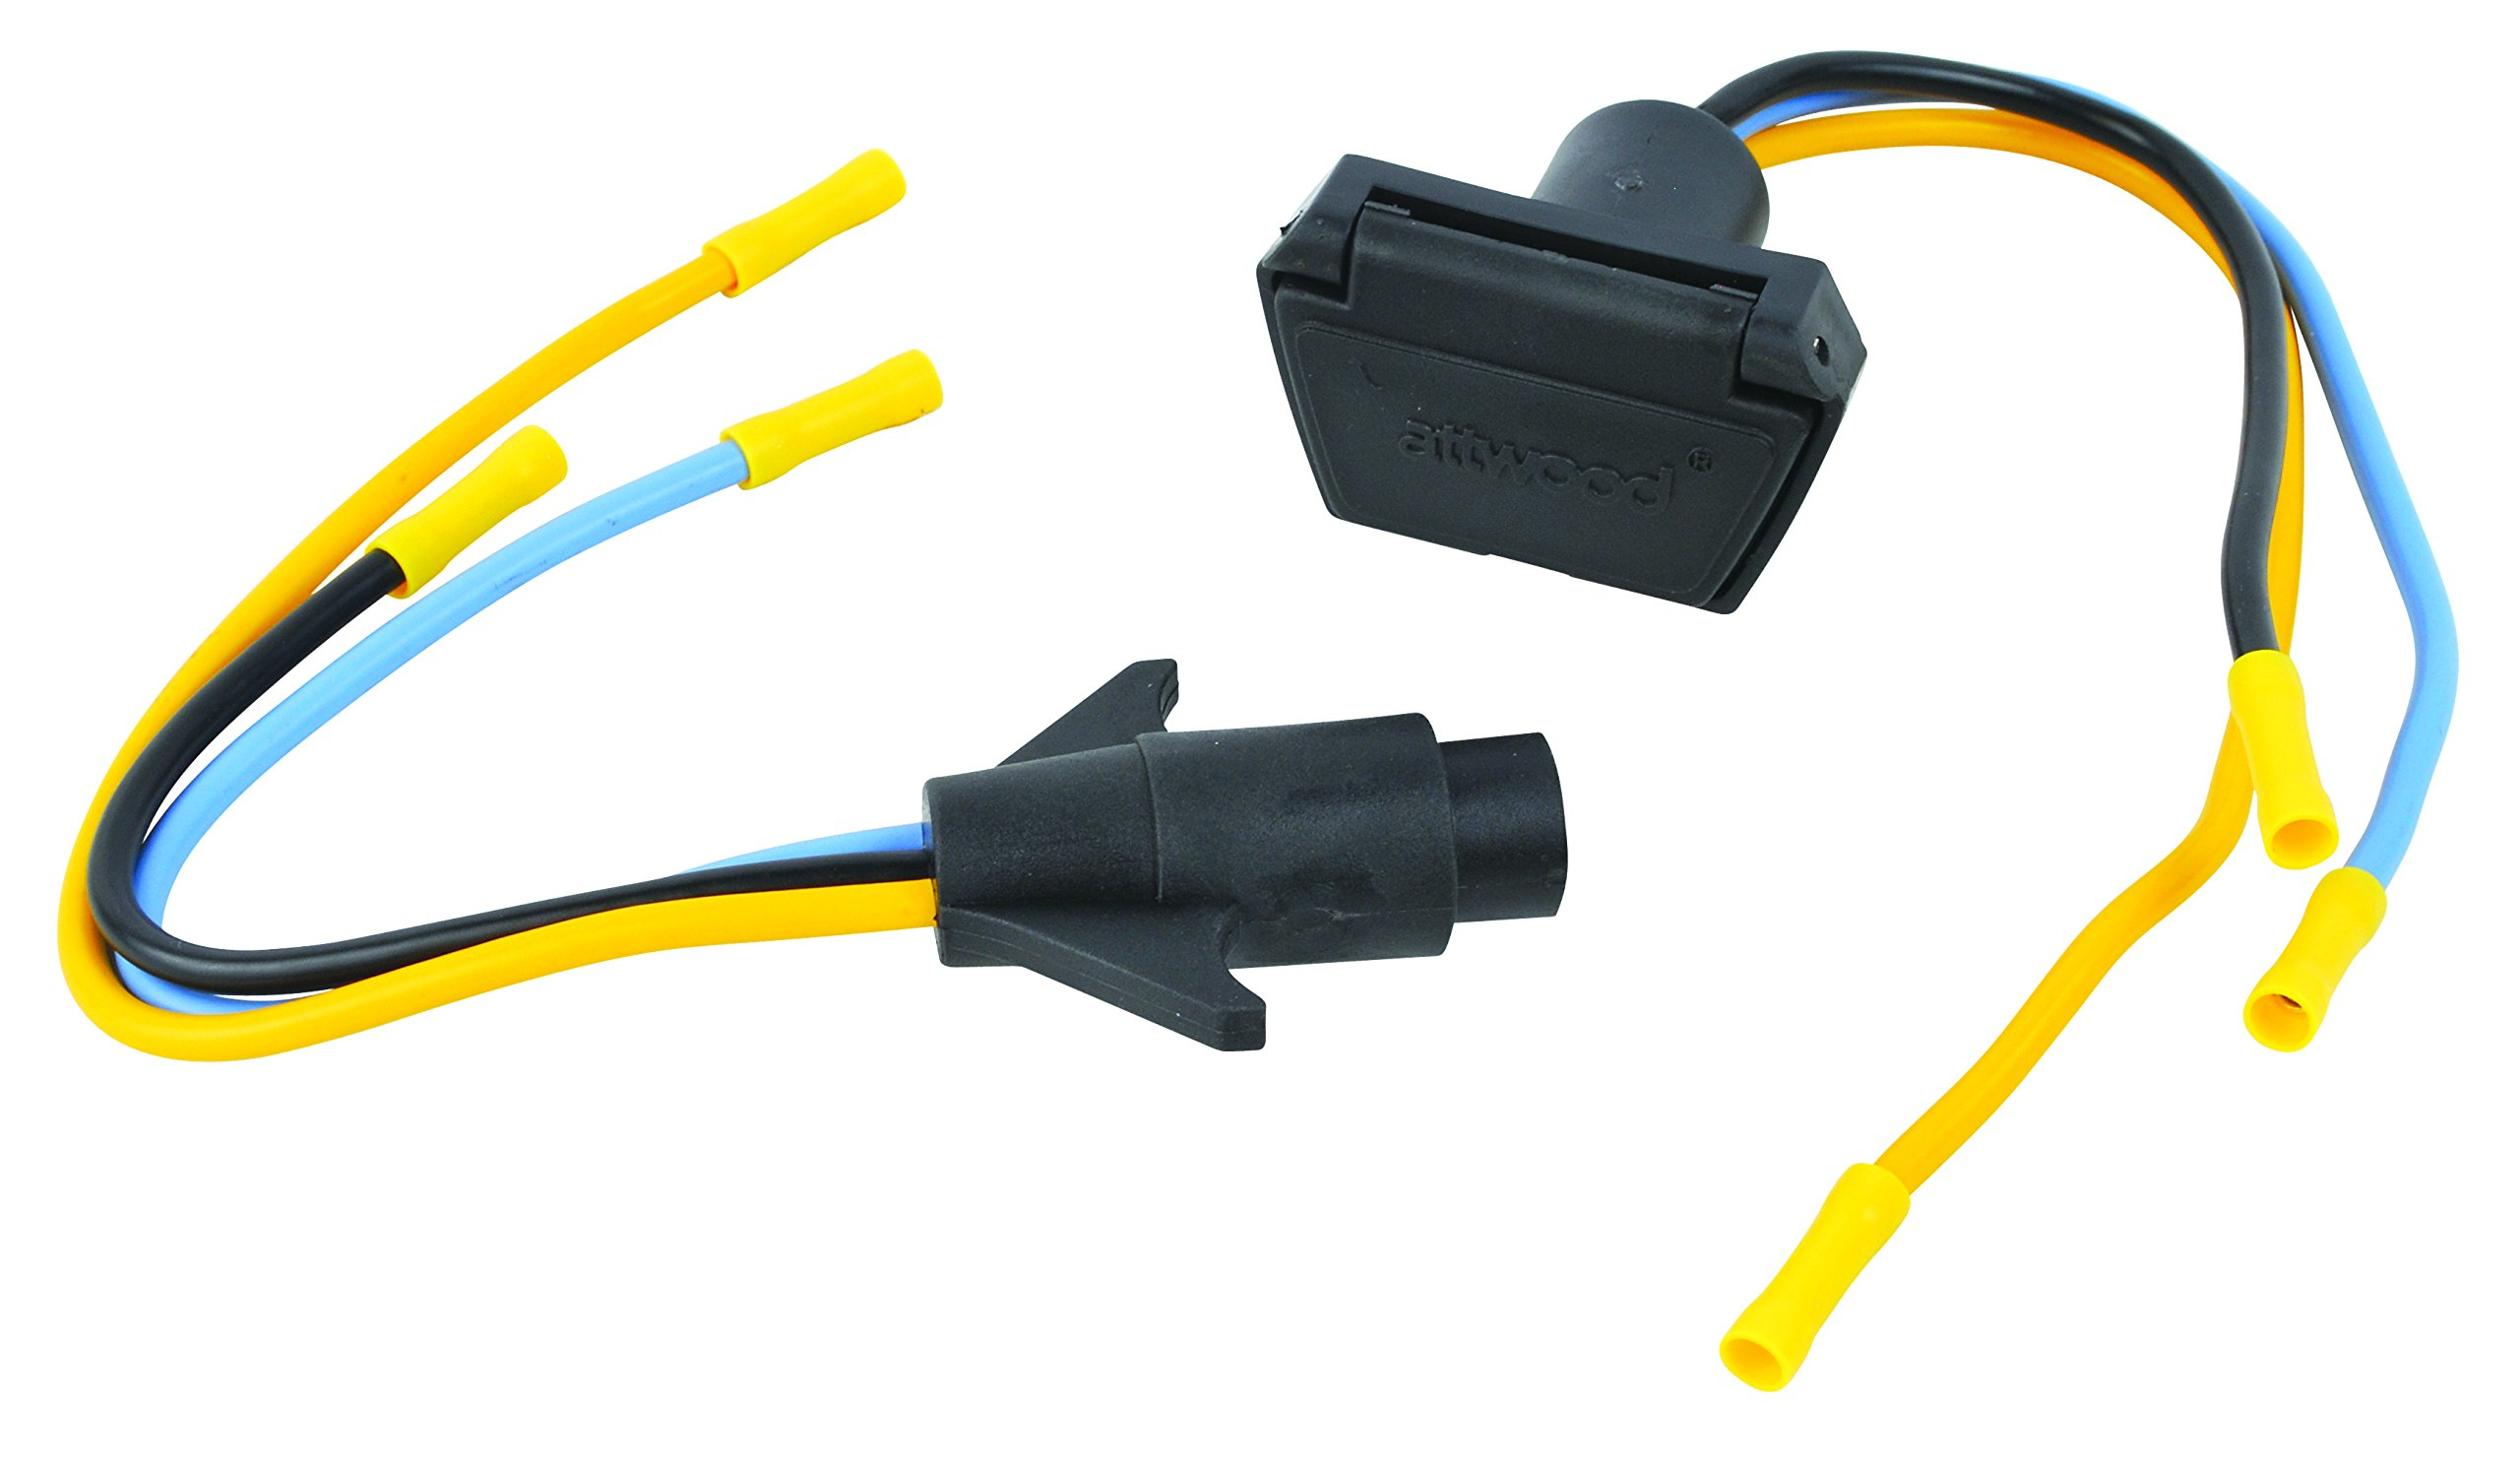 12V/24V 3-Wire Trolling Motor Connector, 10 Gauge